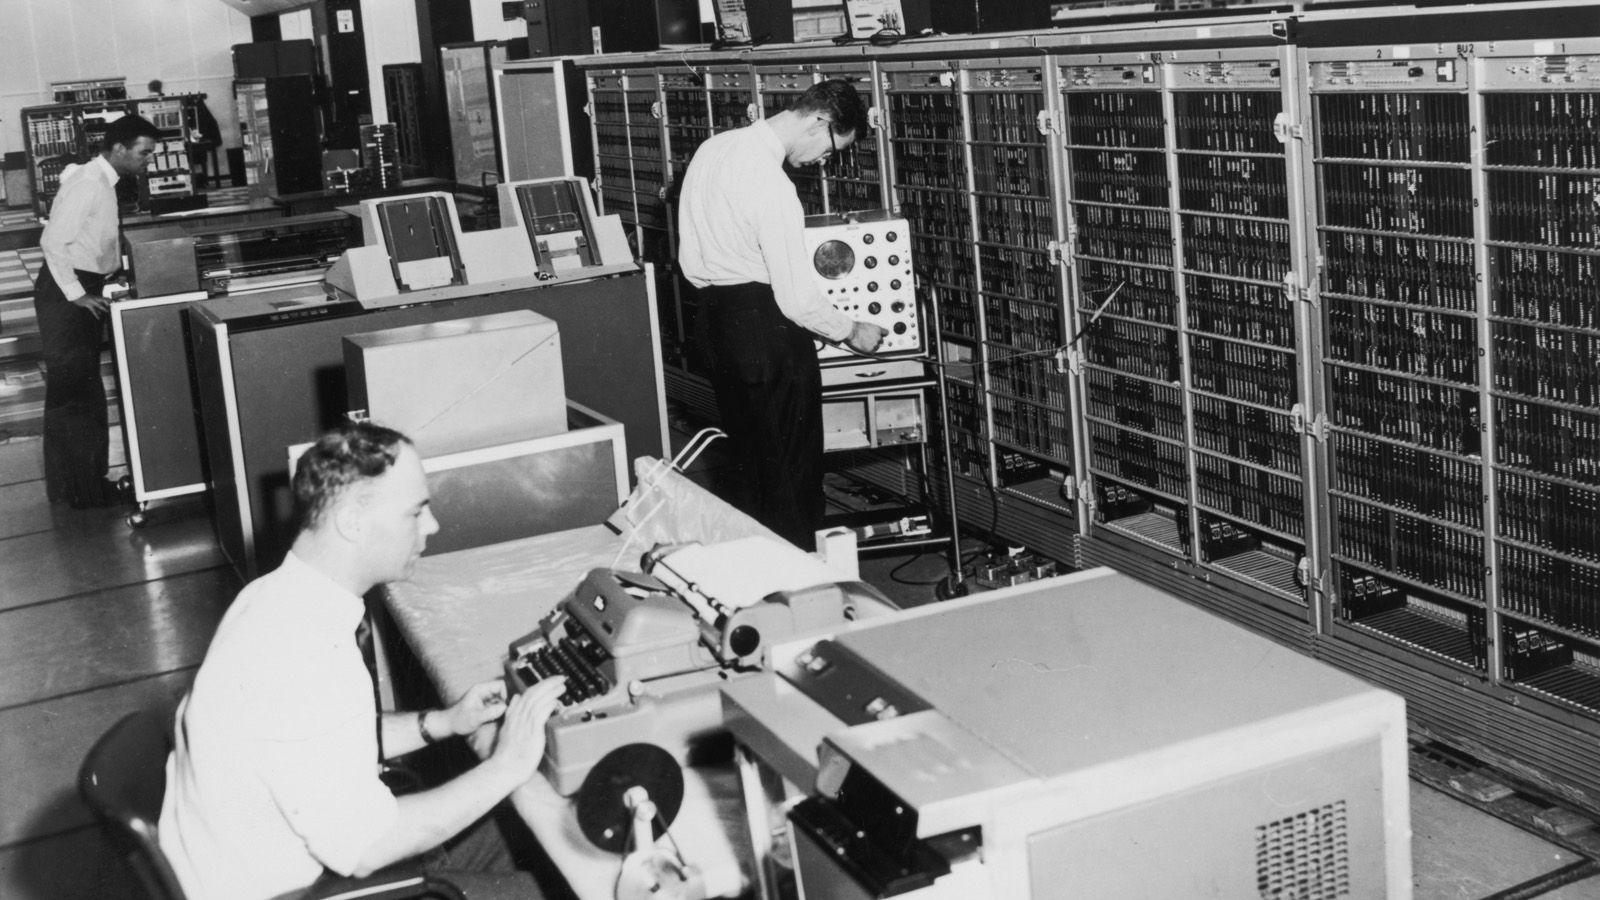 nasa in 1969 what did computers look like - photo #42